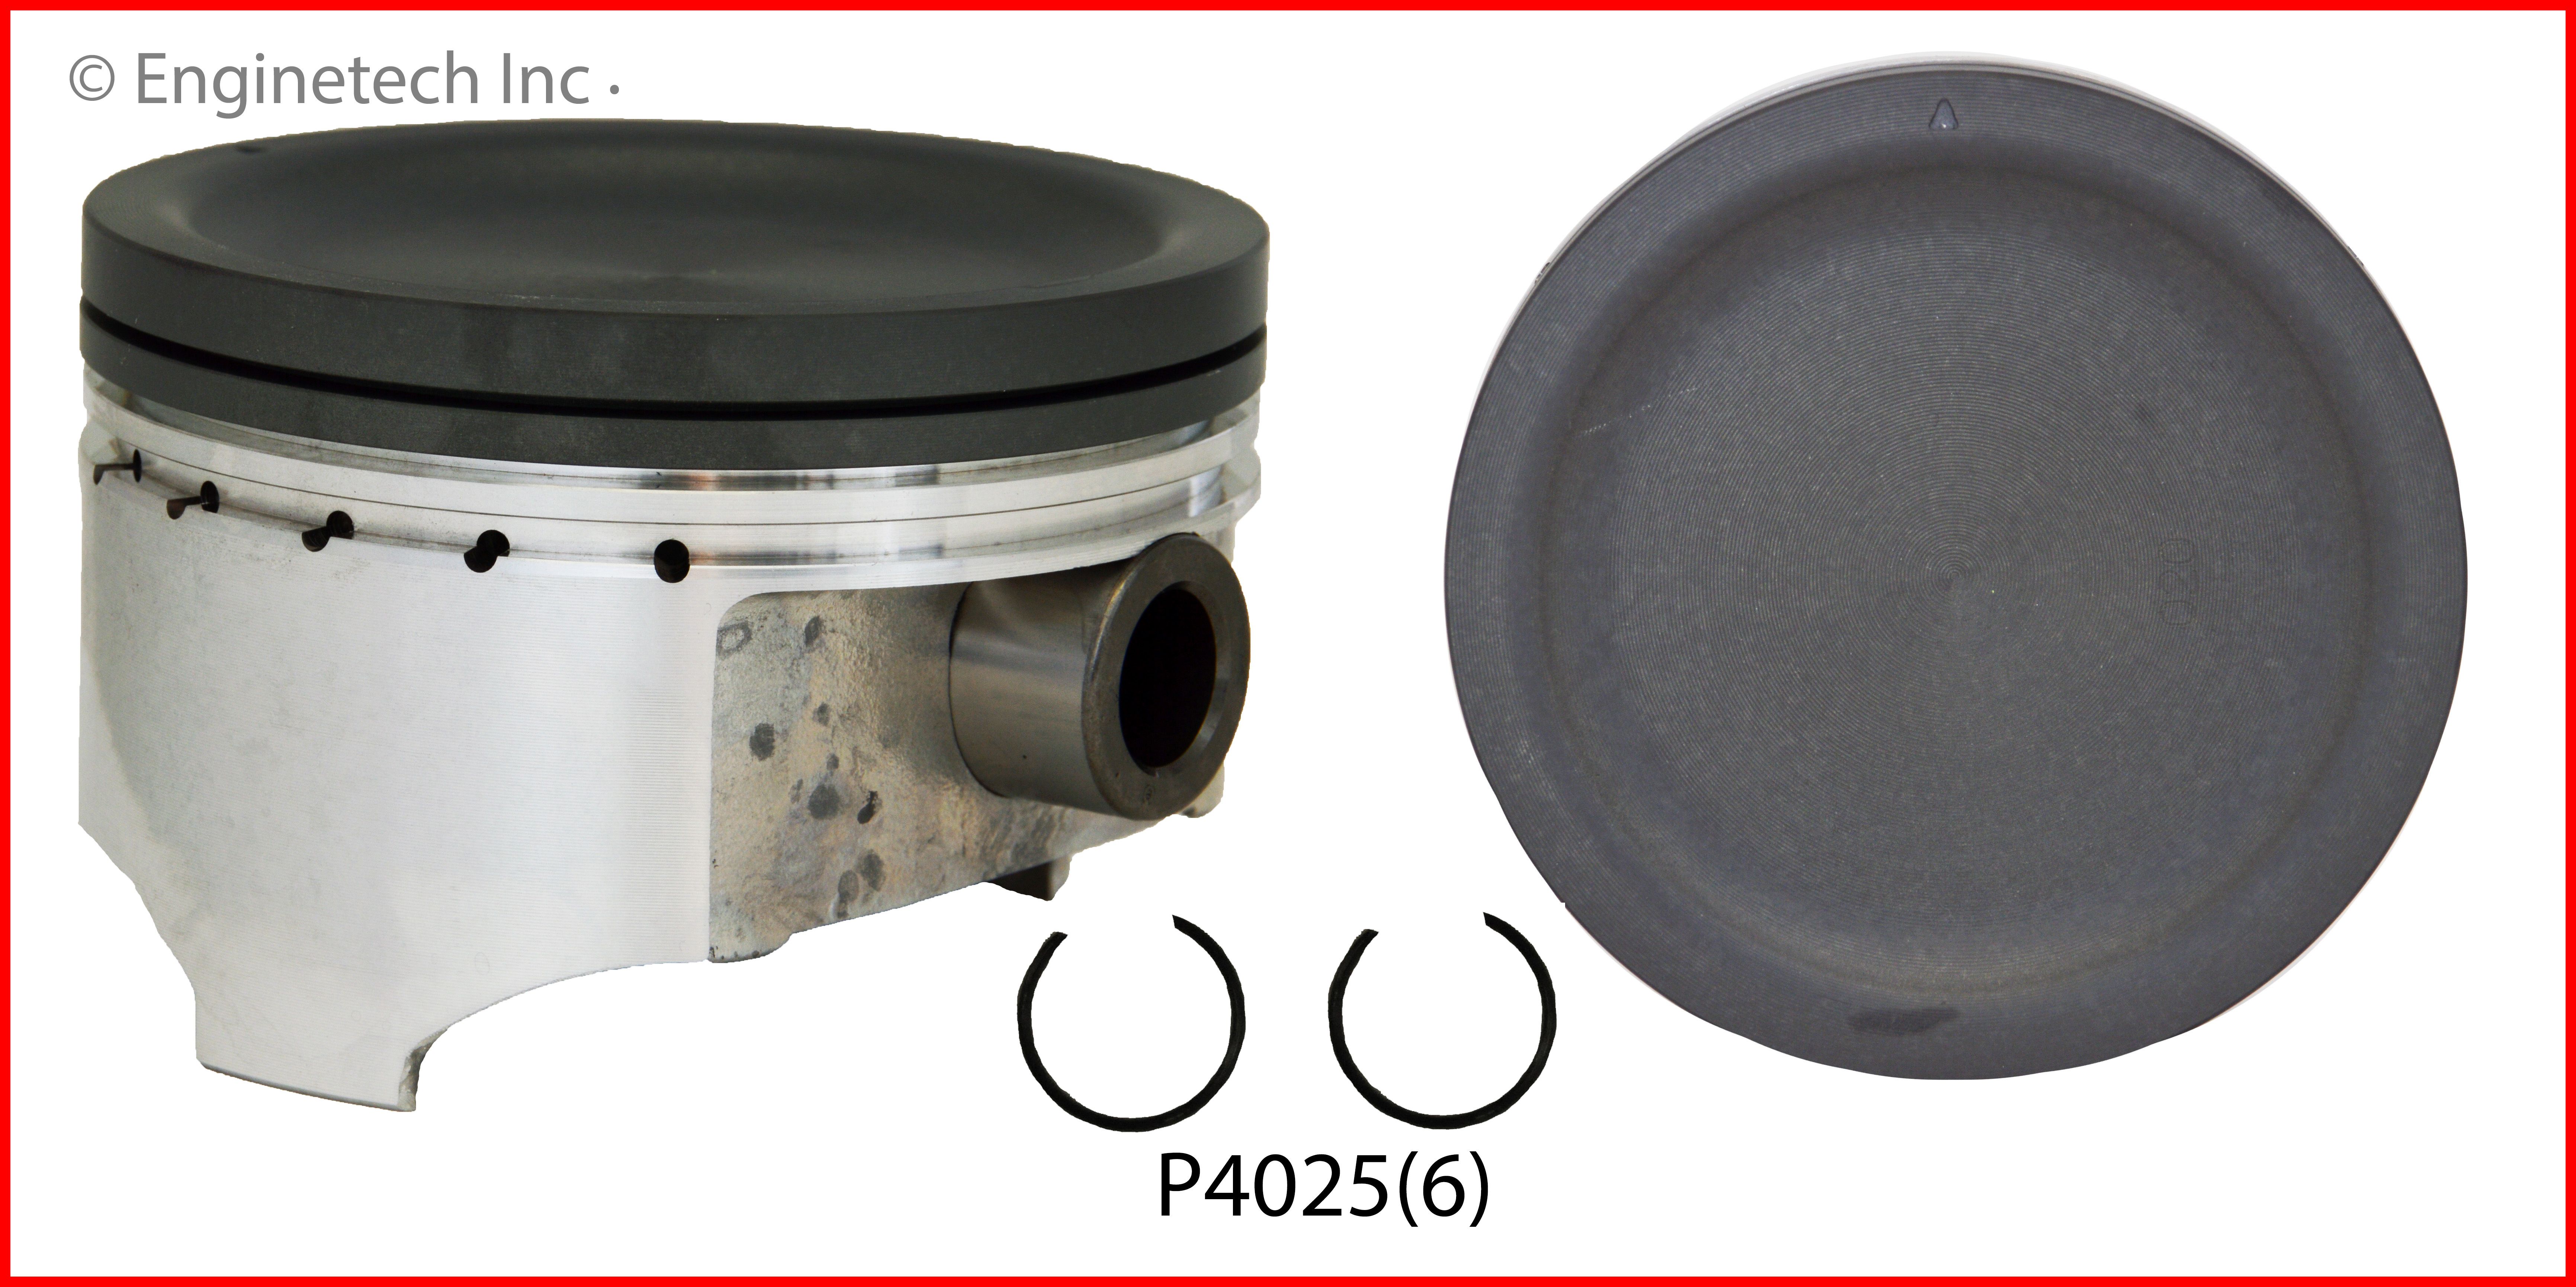 P4025(6) Piston Set Enginetech